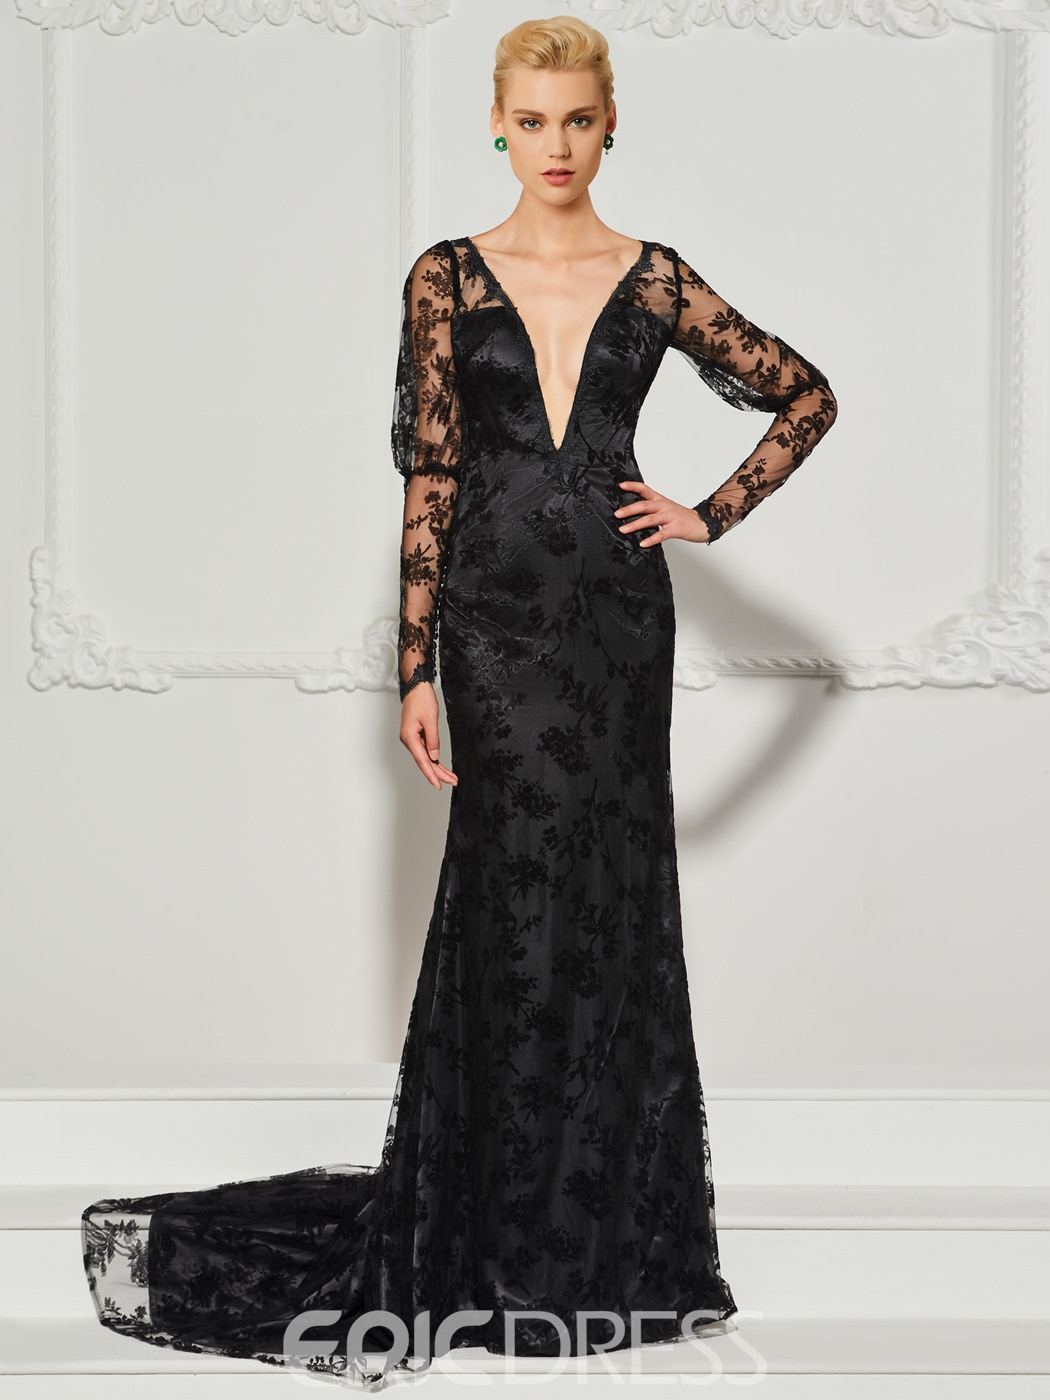 Ericdress V Neck Long Sleeve Lace Mermaid Evening Dress With Train